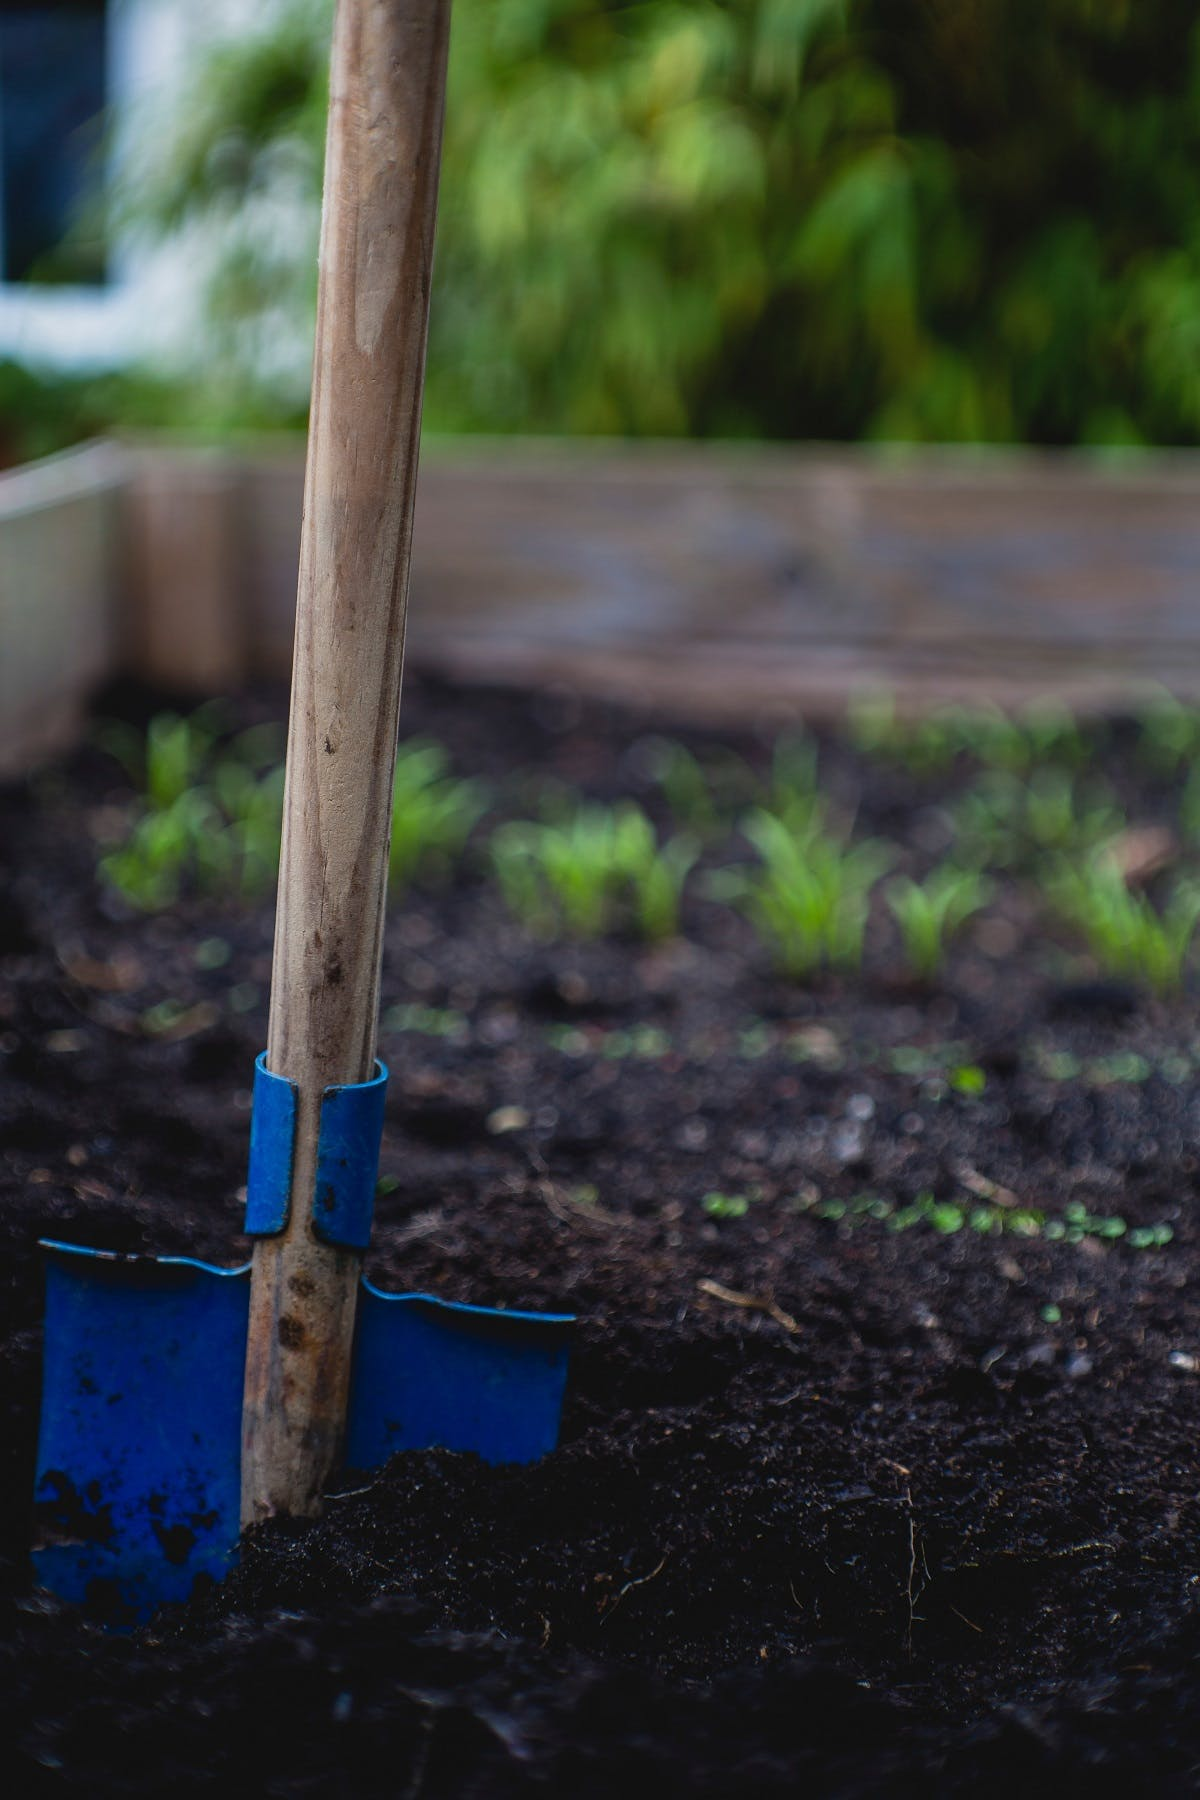 A spade in the soil of a raised vegetable bed. A raised bed is an easy first step to growing your own vegetables